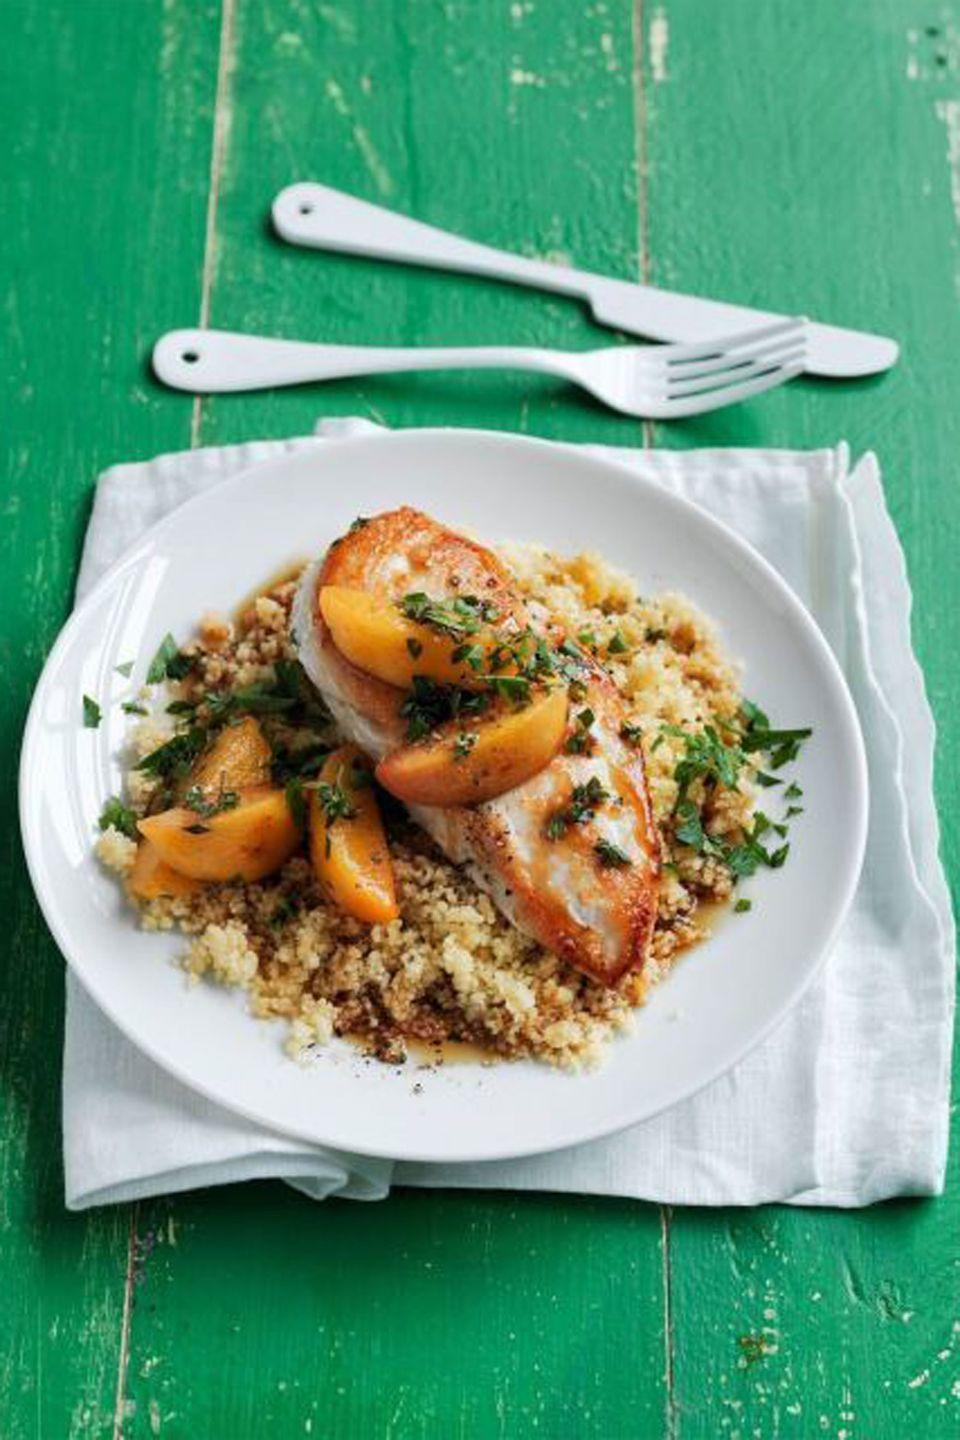 """<p>Sweet summer peaches perfectly complement juicy, seared chicken breast.</p><p><strong><a href=""""http://www.womansday.com/food-recipes/food-drinks/recipes/a55776/chicken-with-peaches-and-ginger-recipe/"""" rel=""""nofollow noopener"""" target=""""_blank"""" data-ylk=""""slk:Get the recipe"""" class=""""link rapid-noclick-resp"""">Get the recipe</a>.</strong></p>"""